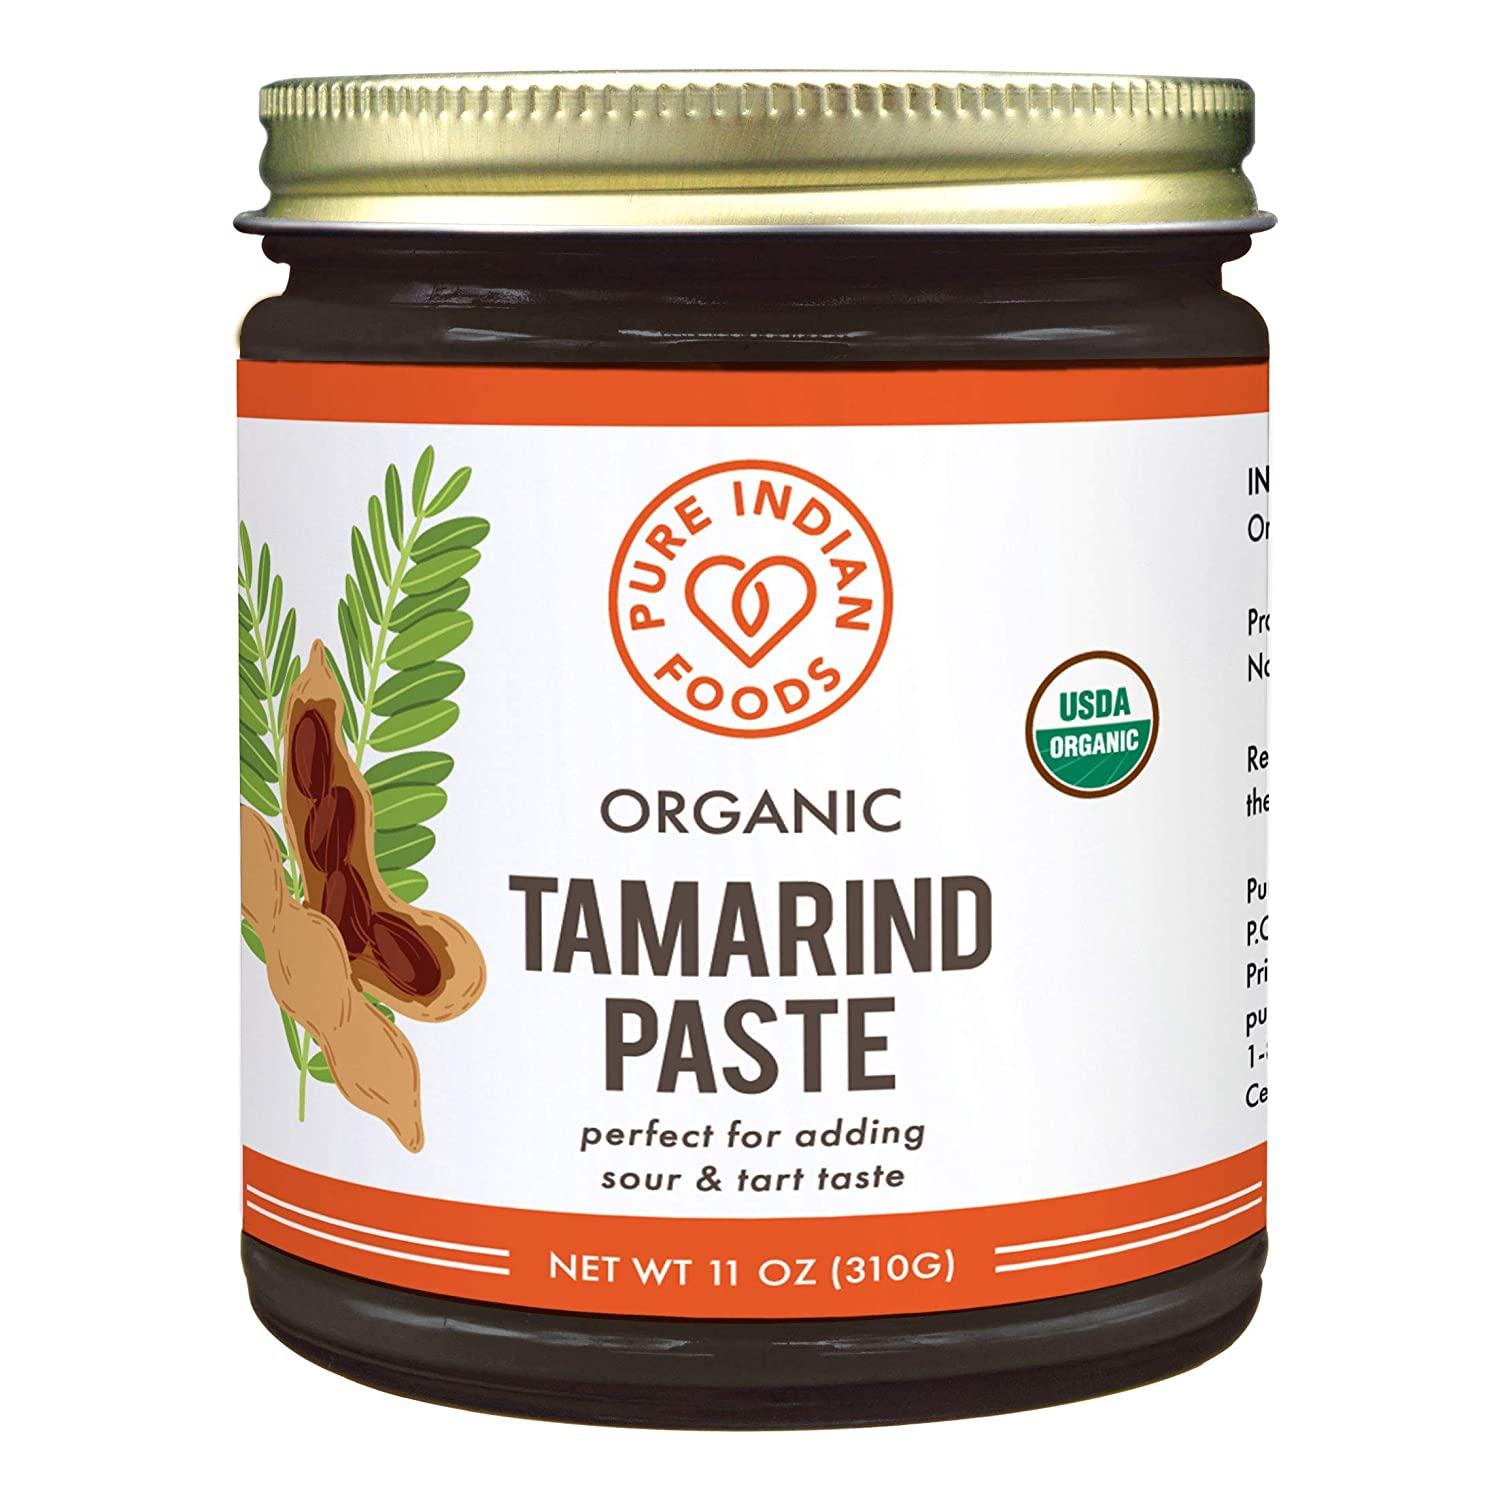 Pure Organic Tamarind Paste Concentrate - Sweet and Sour Sauce for Indian Chutney and Thai curry, Gluten Free, No Sugar Added, Glass Jar (1 PACK)